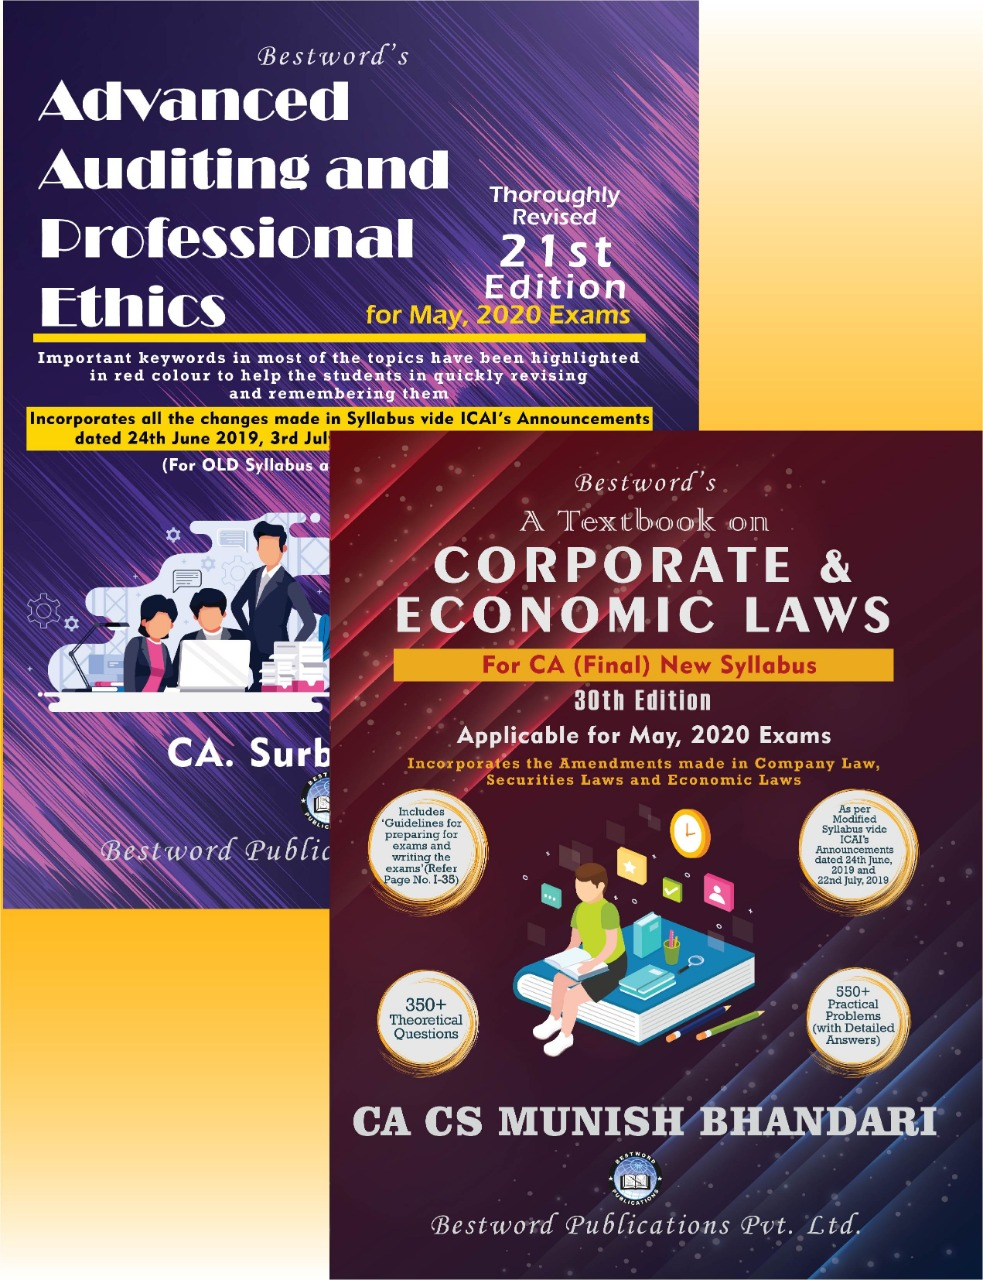 bestword's-combo-of-two-books---advanced-auditing-and-prof.-ethics---21st-edition-by-ca-surbhi-bansal-&-corporate-&-economic-laws---30th-edition-by-ca-cs-munish-bhandari---for-ca-(final)-may,-2020-exams-(new-syllabus)